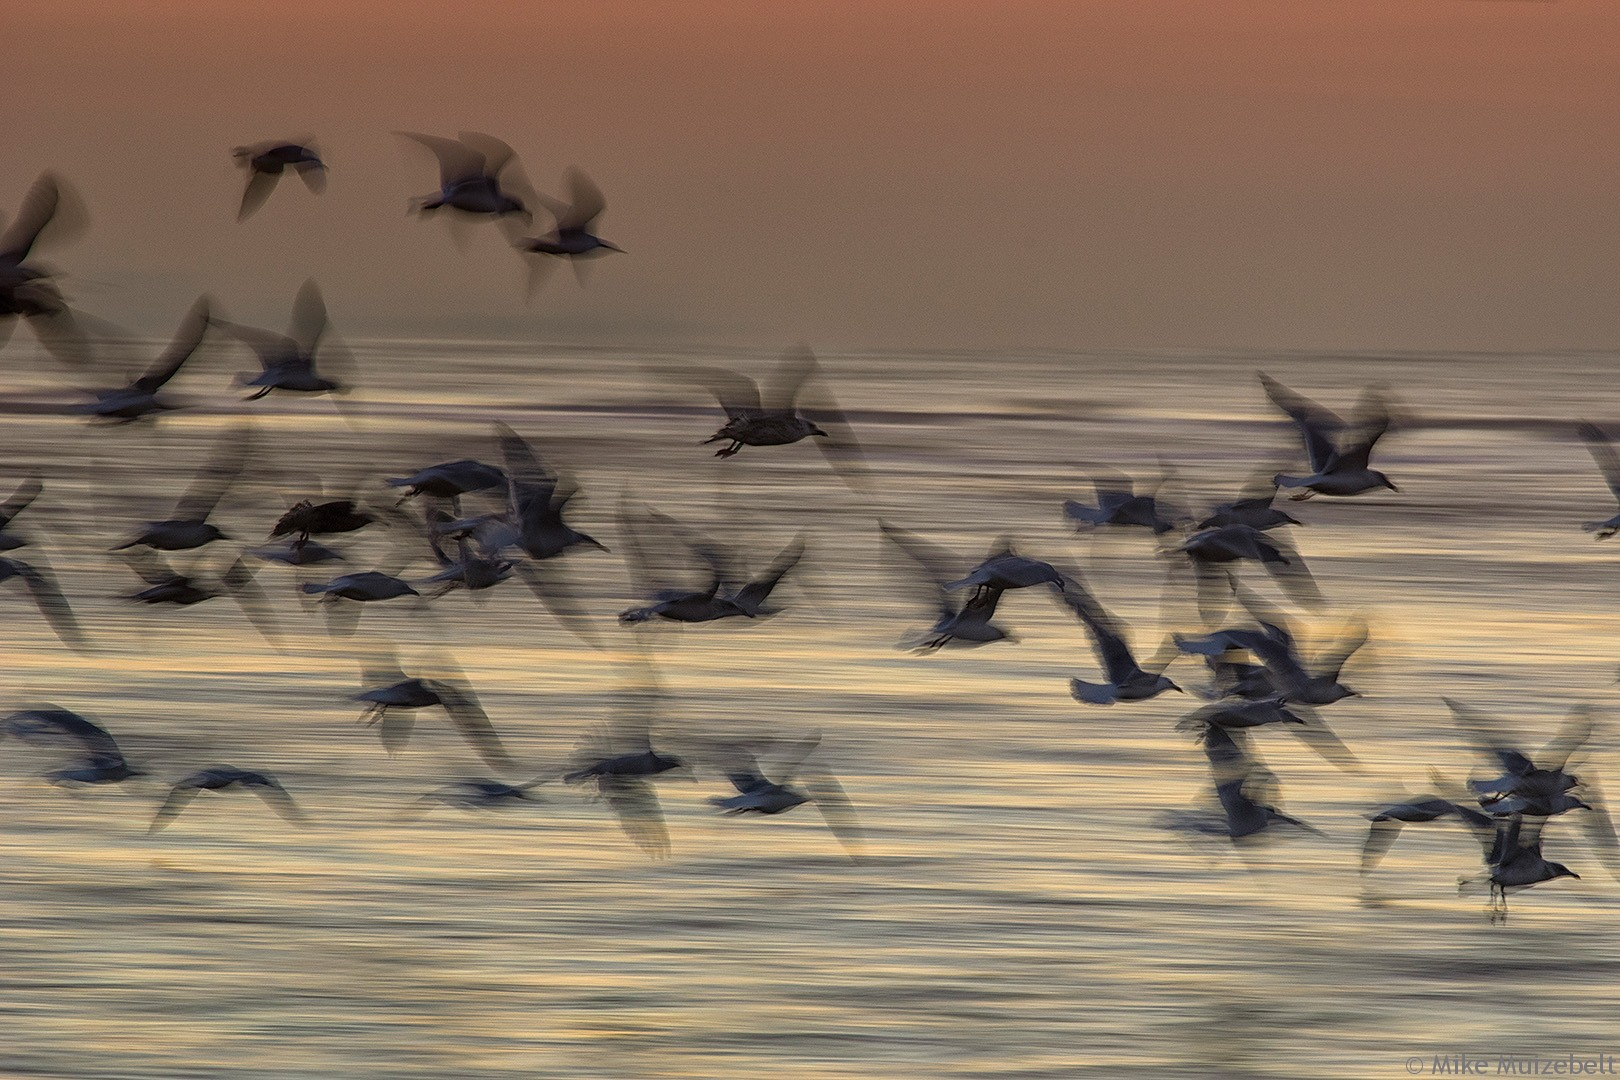 #wassenaar #sunset #beach #red #scheveningen #seagulls #wisher #motion #ocean